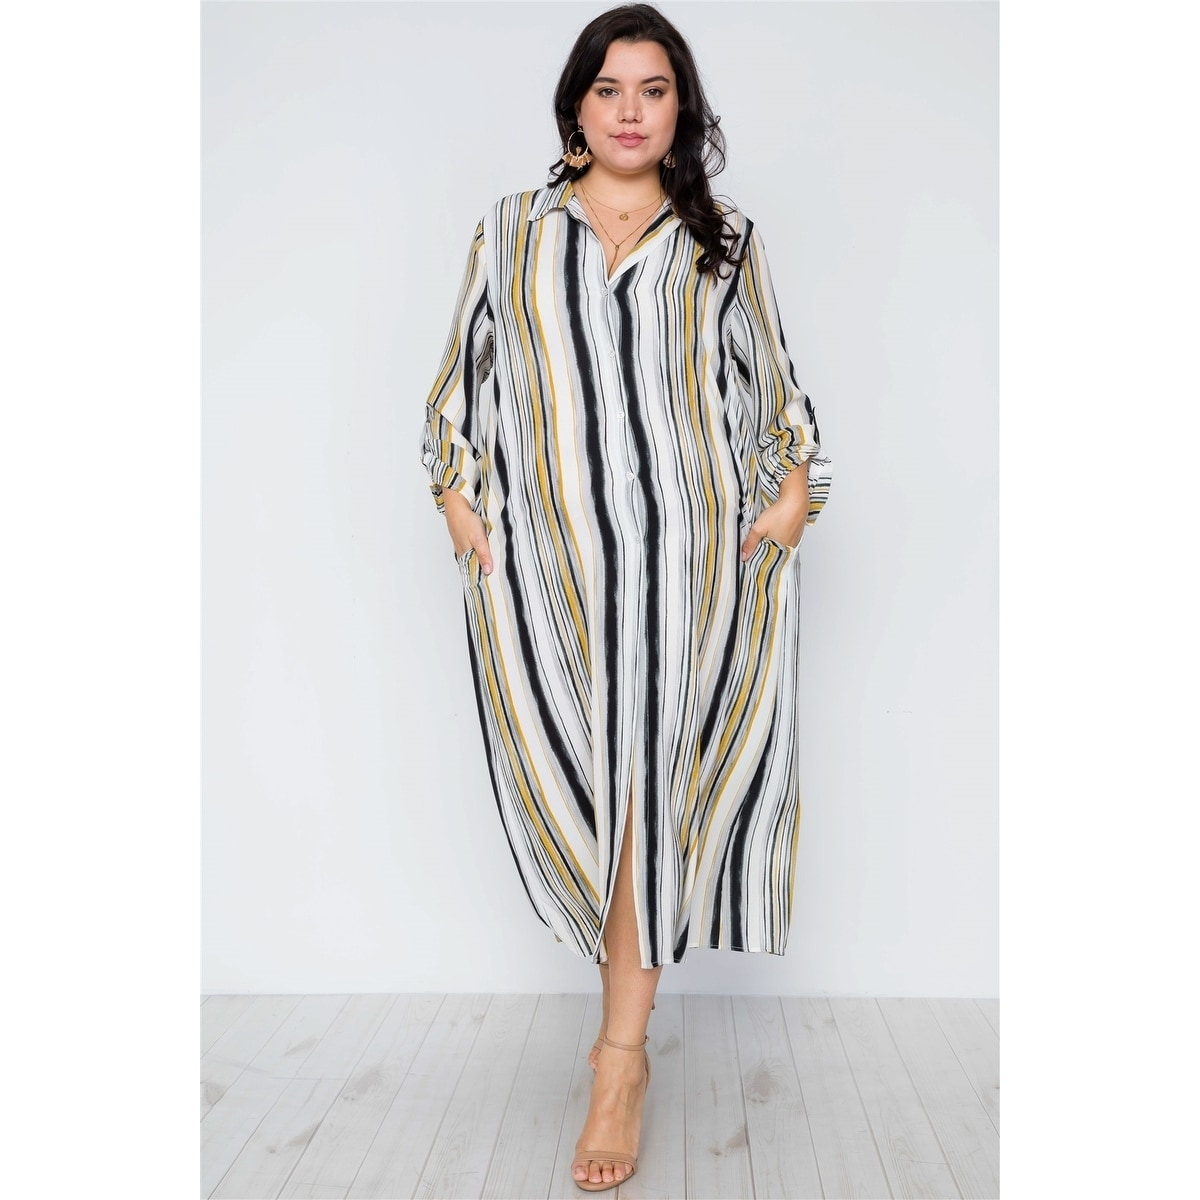 4574b8bdc849 Shop JED Women's Plus Size Stripes Long Sleeve Button Down Maxi Dress Top -  On Sale - Free Shipping On Orders Over $45 - Overstock - 27076221